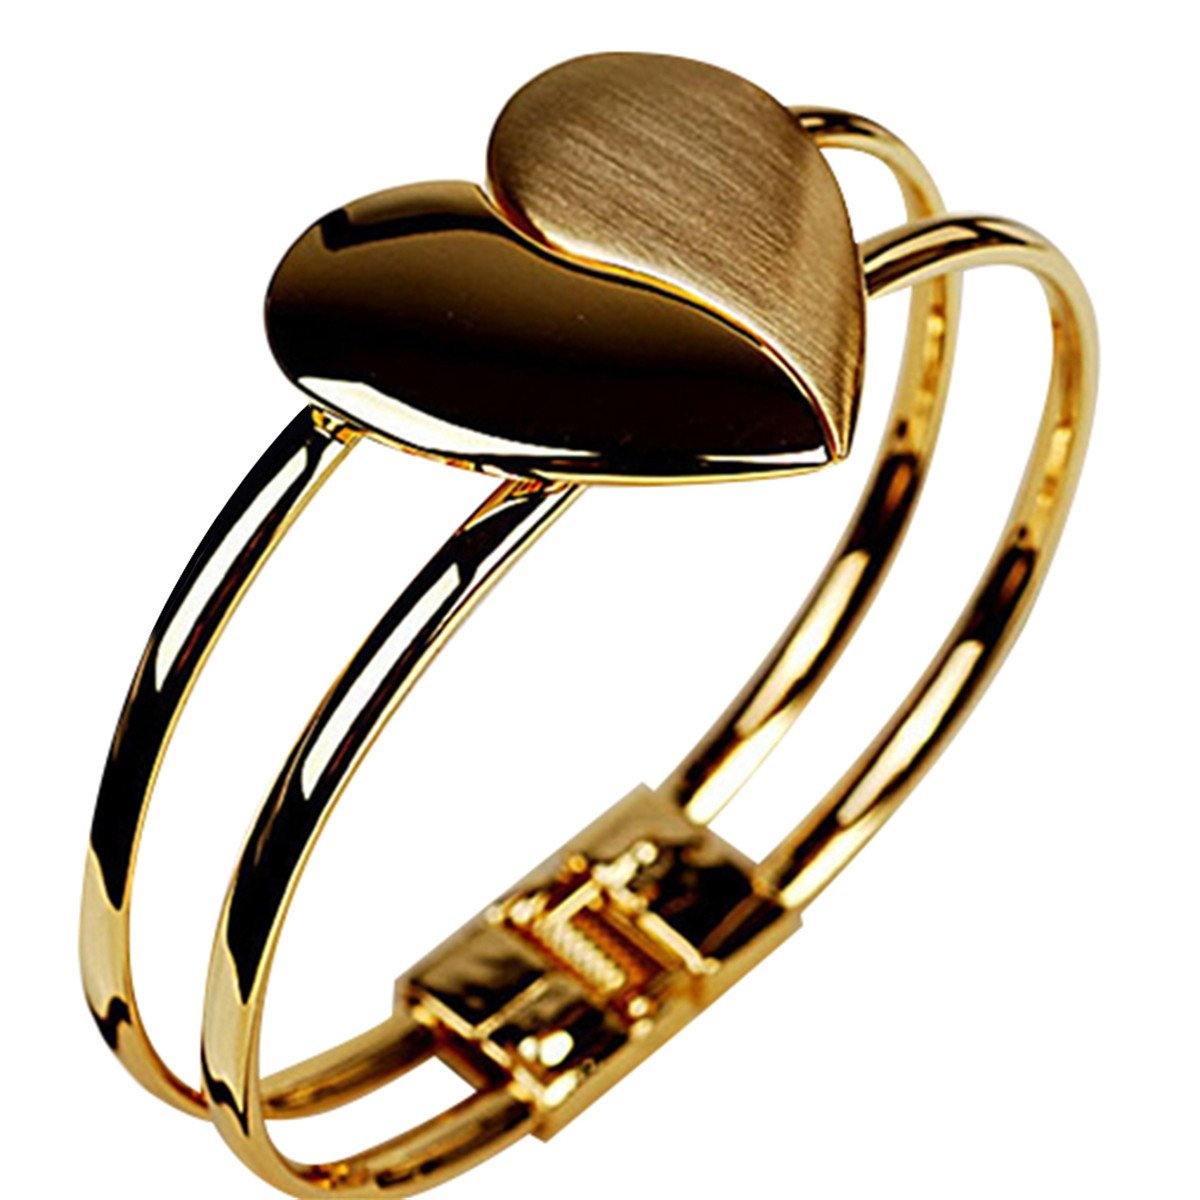 CH Elegant Charm Heart Shaped Wristband Gold Color Bracelets Bangles For Women Fashion Cuff Bracelets